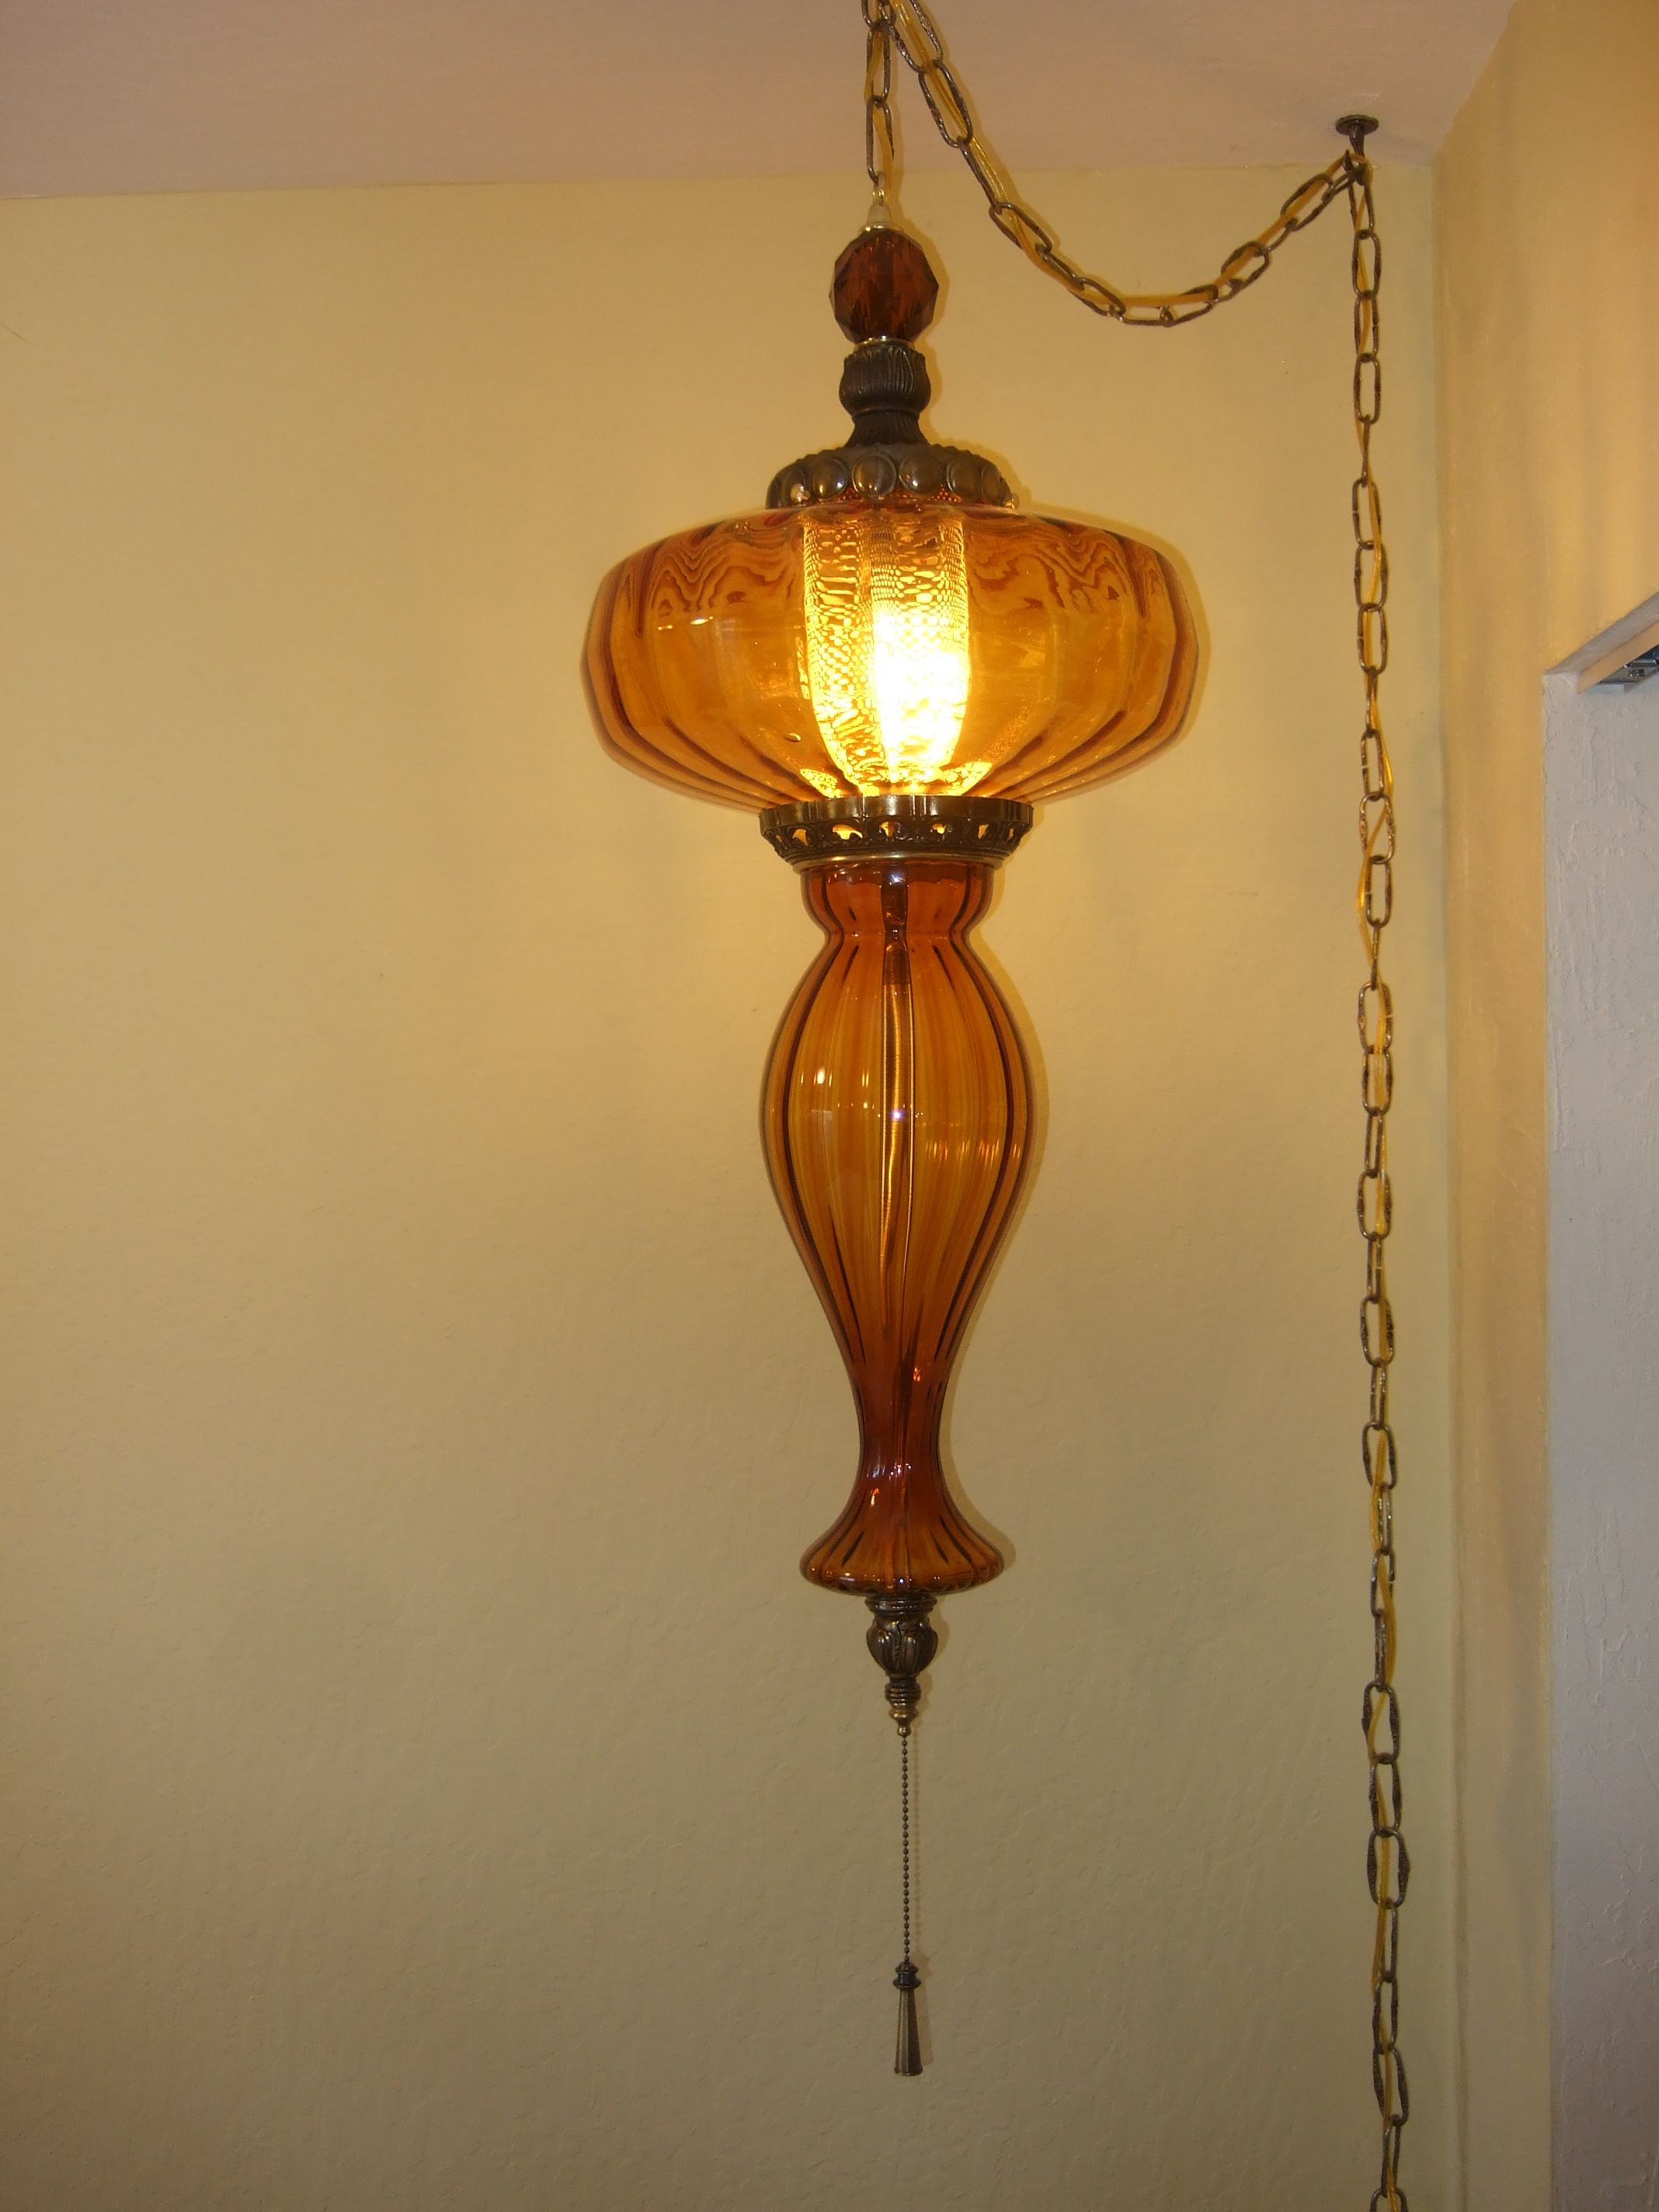 This is an Amber swag l& I designed from repurposing parts from vintage table l&s. & This is an Amber swag lamp I designed from repurposing parts from ...